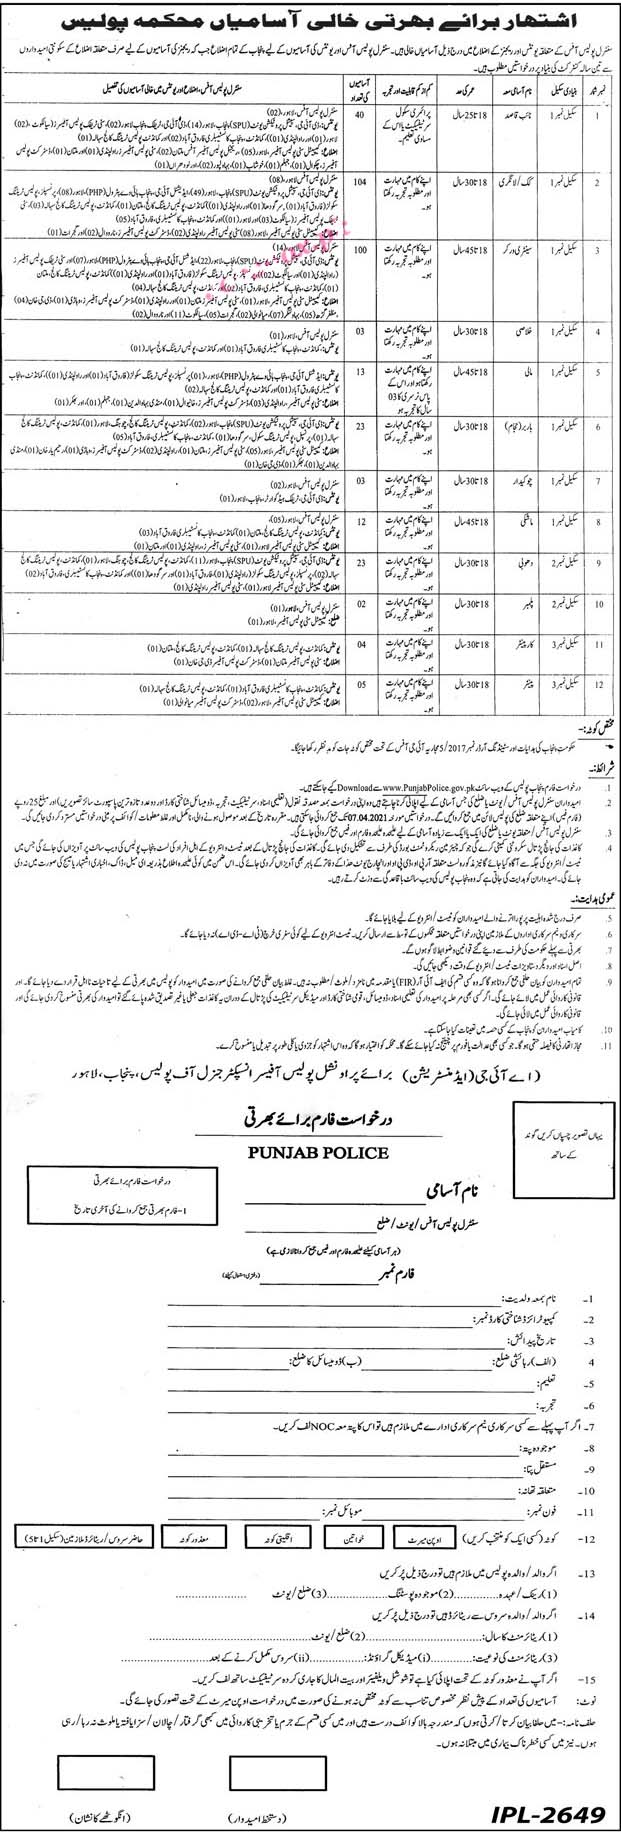 Latest Punjab Police Jobs 2021 | New Jobs In Punjab Police 2021